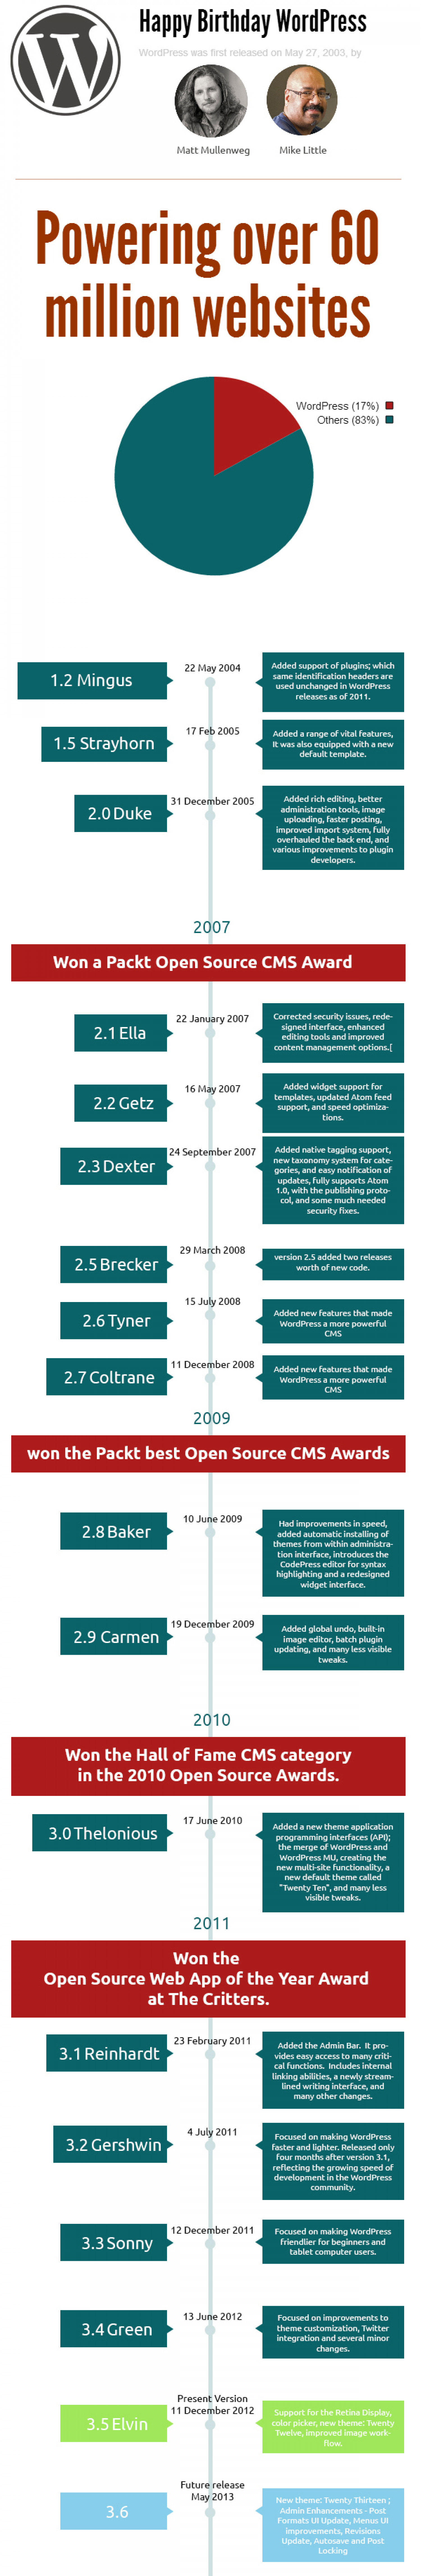 10 years glorious journey of WordPress Infographic